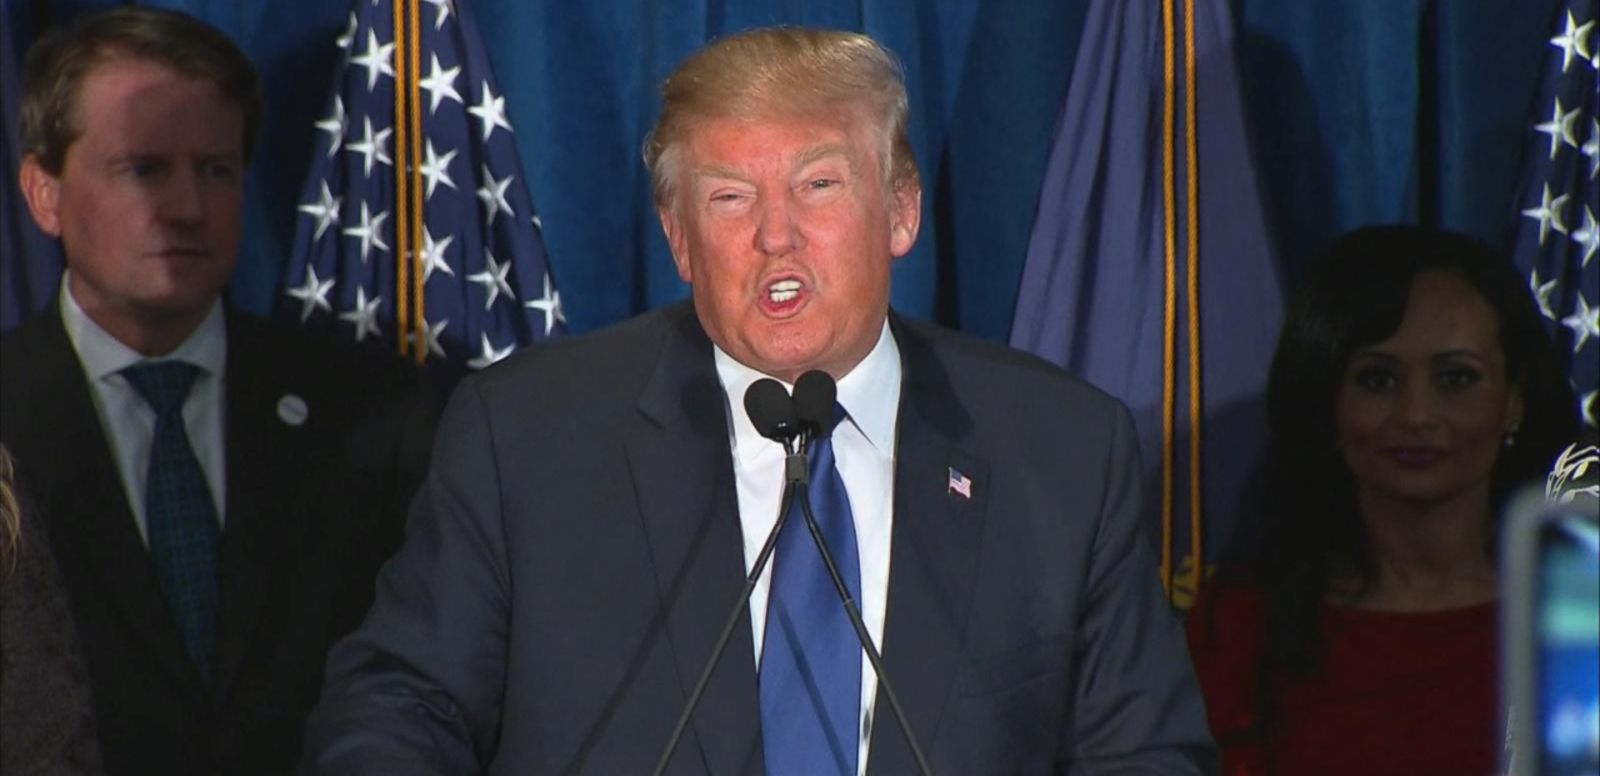 VIDEO: Trump Gives Victory Speech Following New Hampshire Win